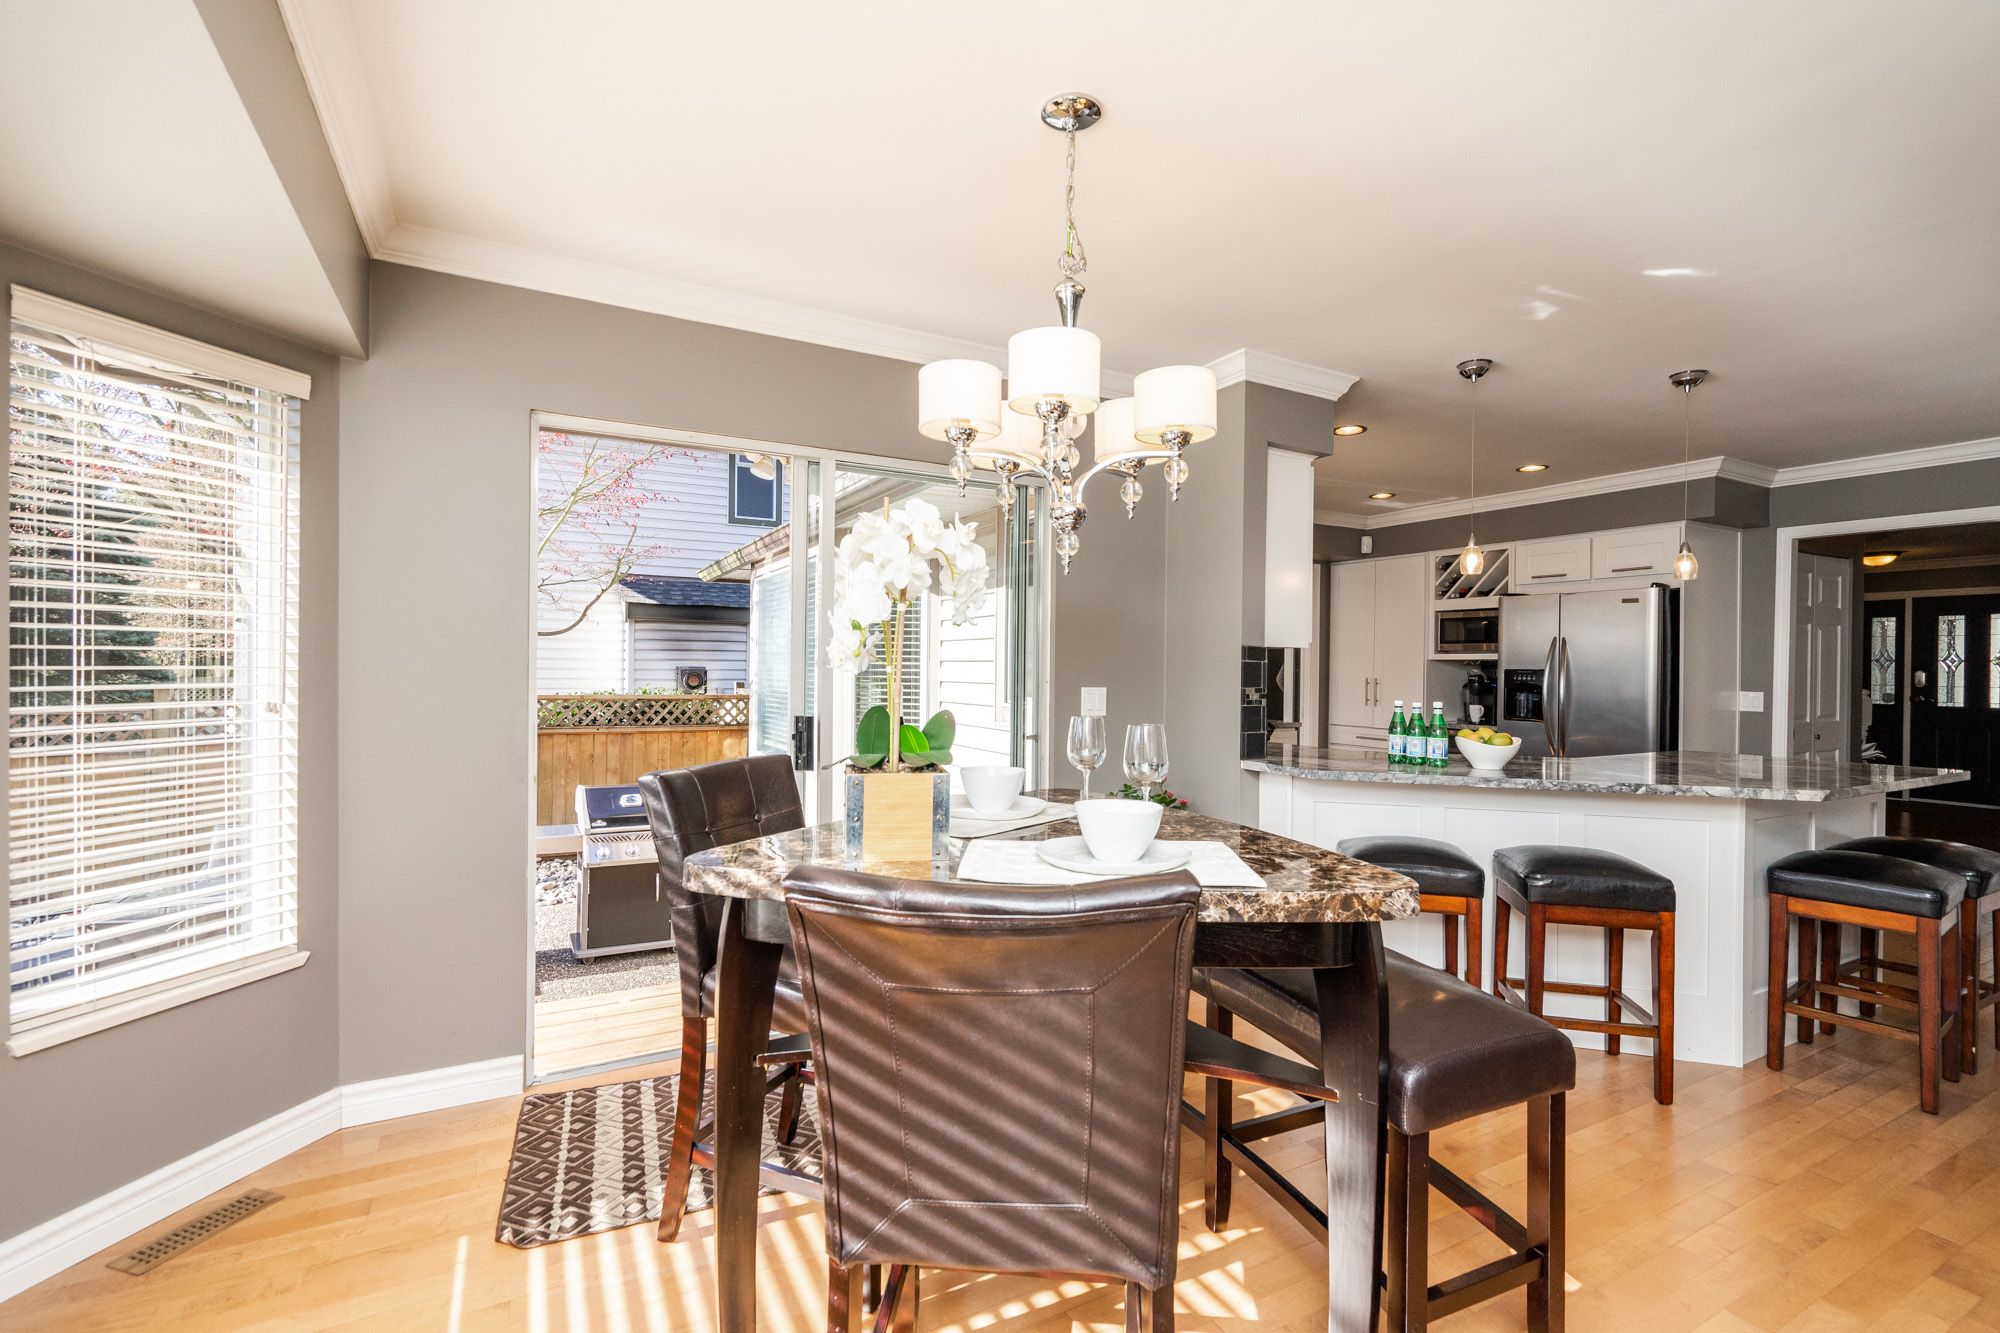 """Photo 9: Photos: 8448 213 Street in Langley: Walnut Grove House for sale in """"Forest Hills"""" : MLS®# R2259409"""